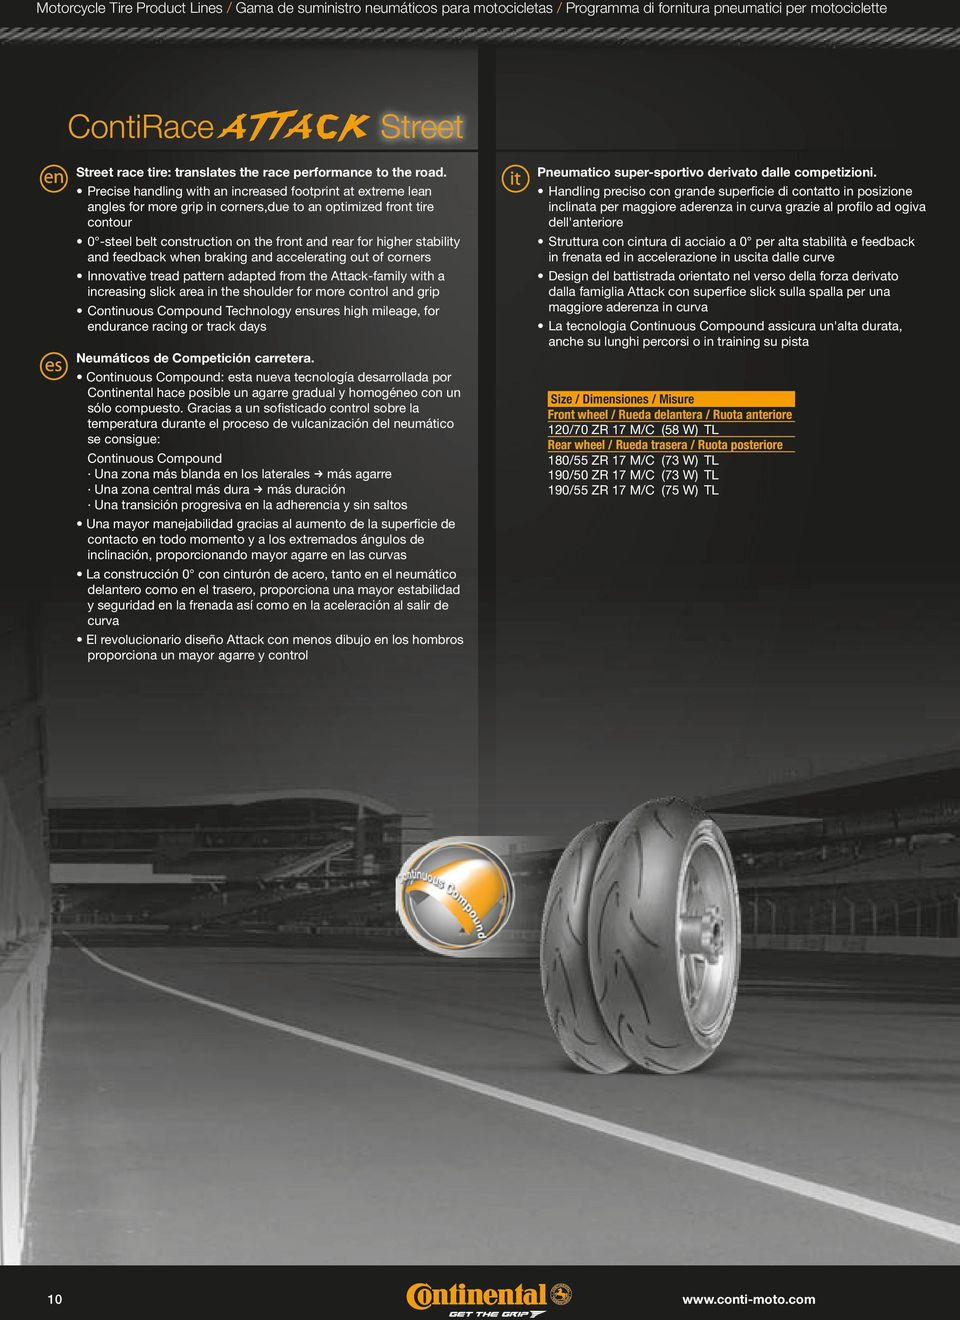 Precise handling with an increased footprint at extreme lean angles for more grip in corners,due to an optimized front tire contour 0 -steel belt construction on the front and rear for higher